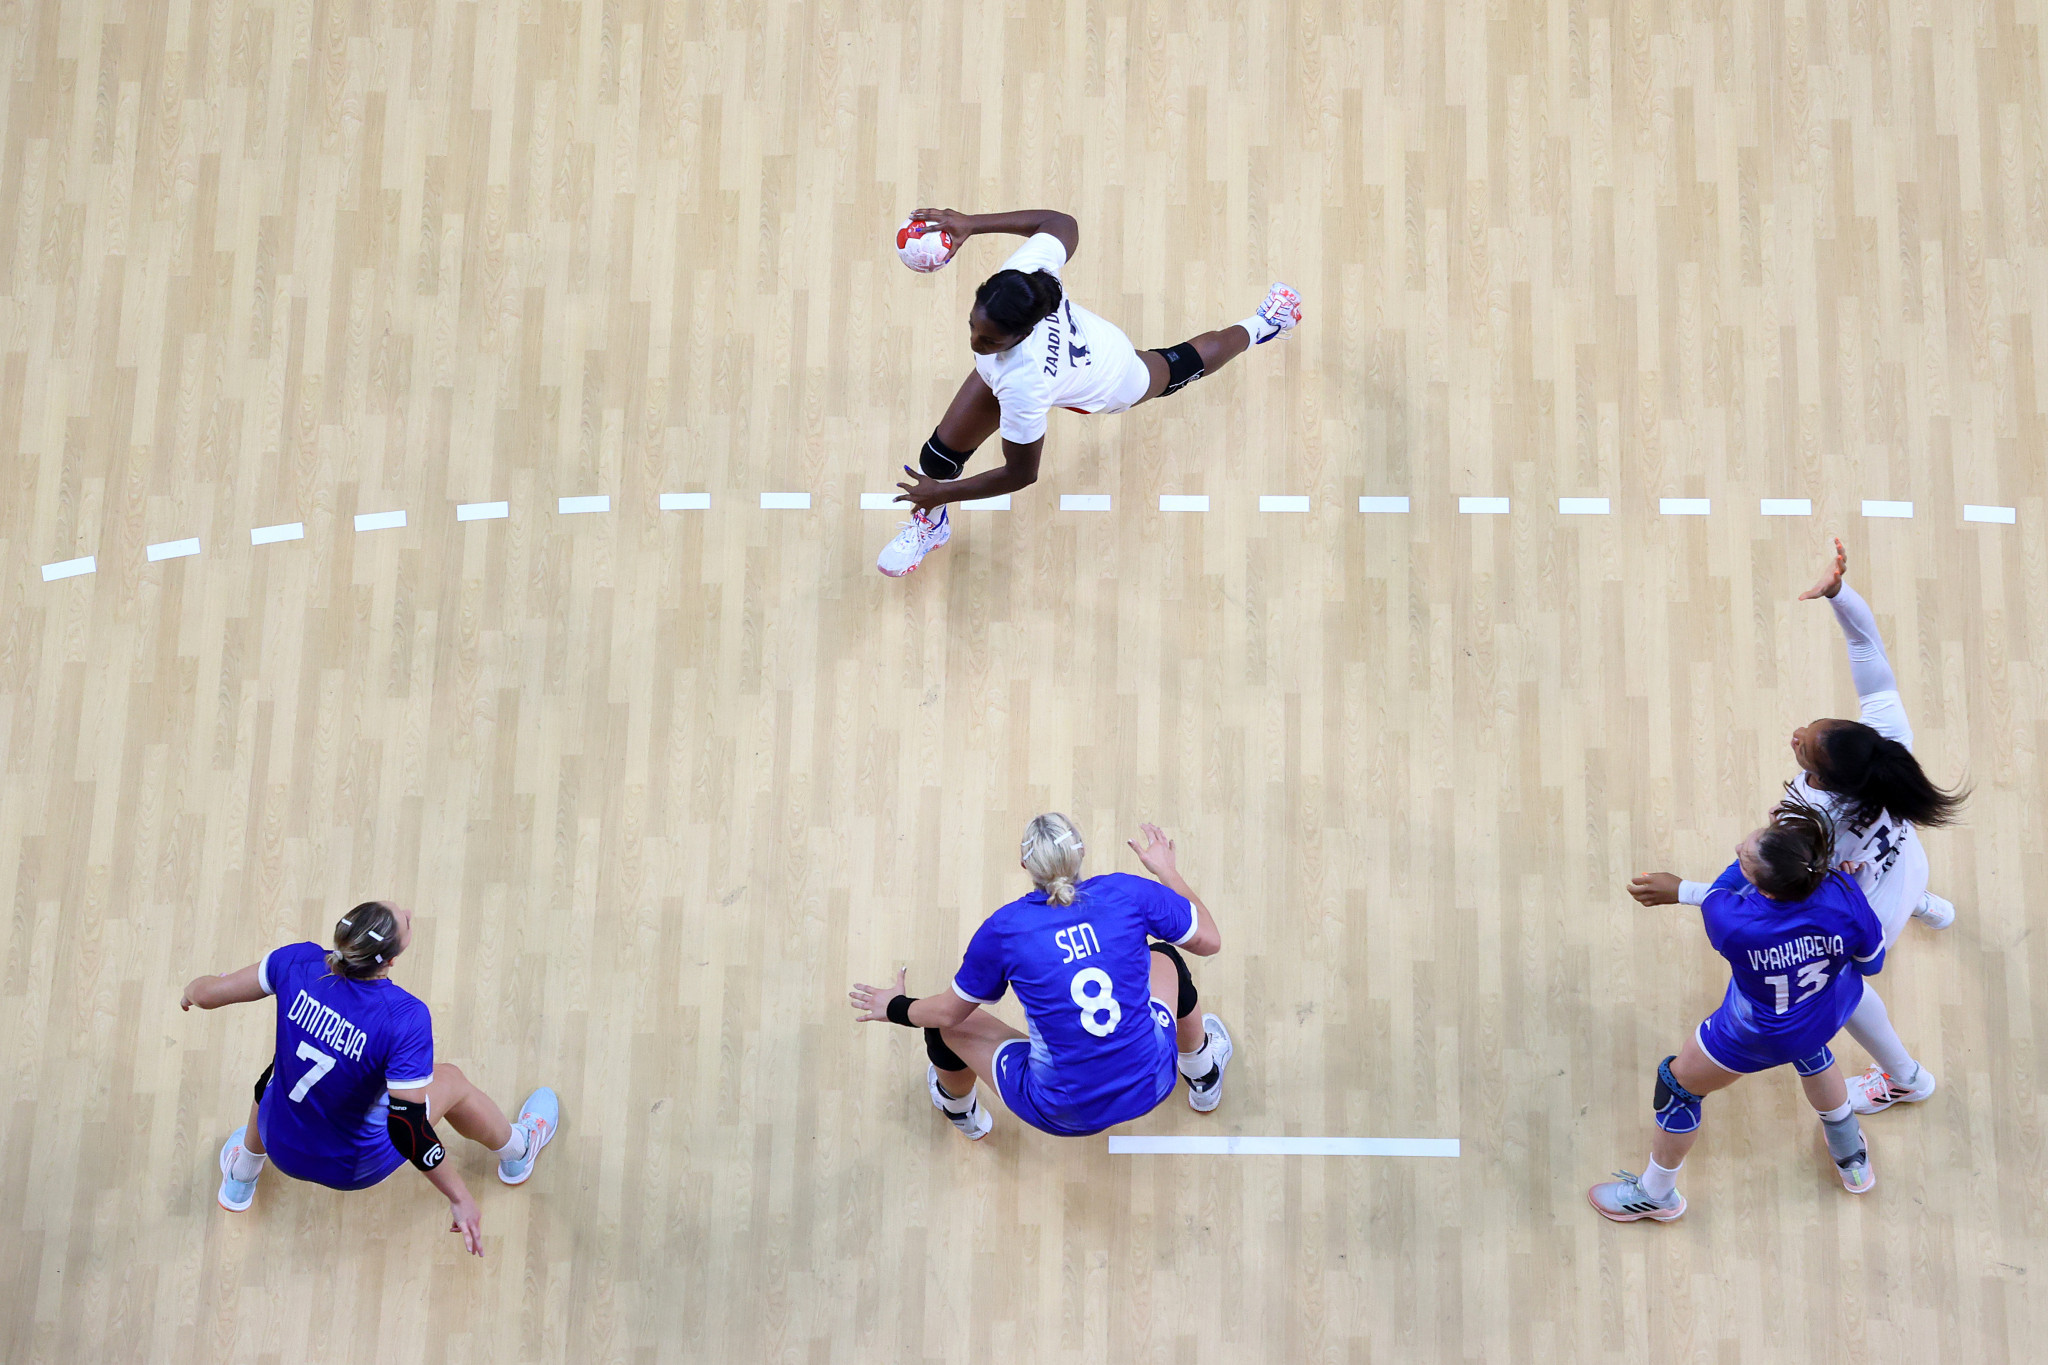 The ROC handball team lost to France in the final of the Tokyo 2020 Olympic Games ©Getty Images